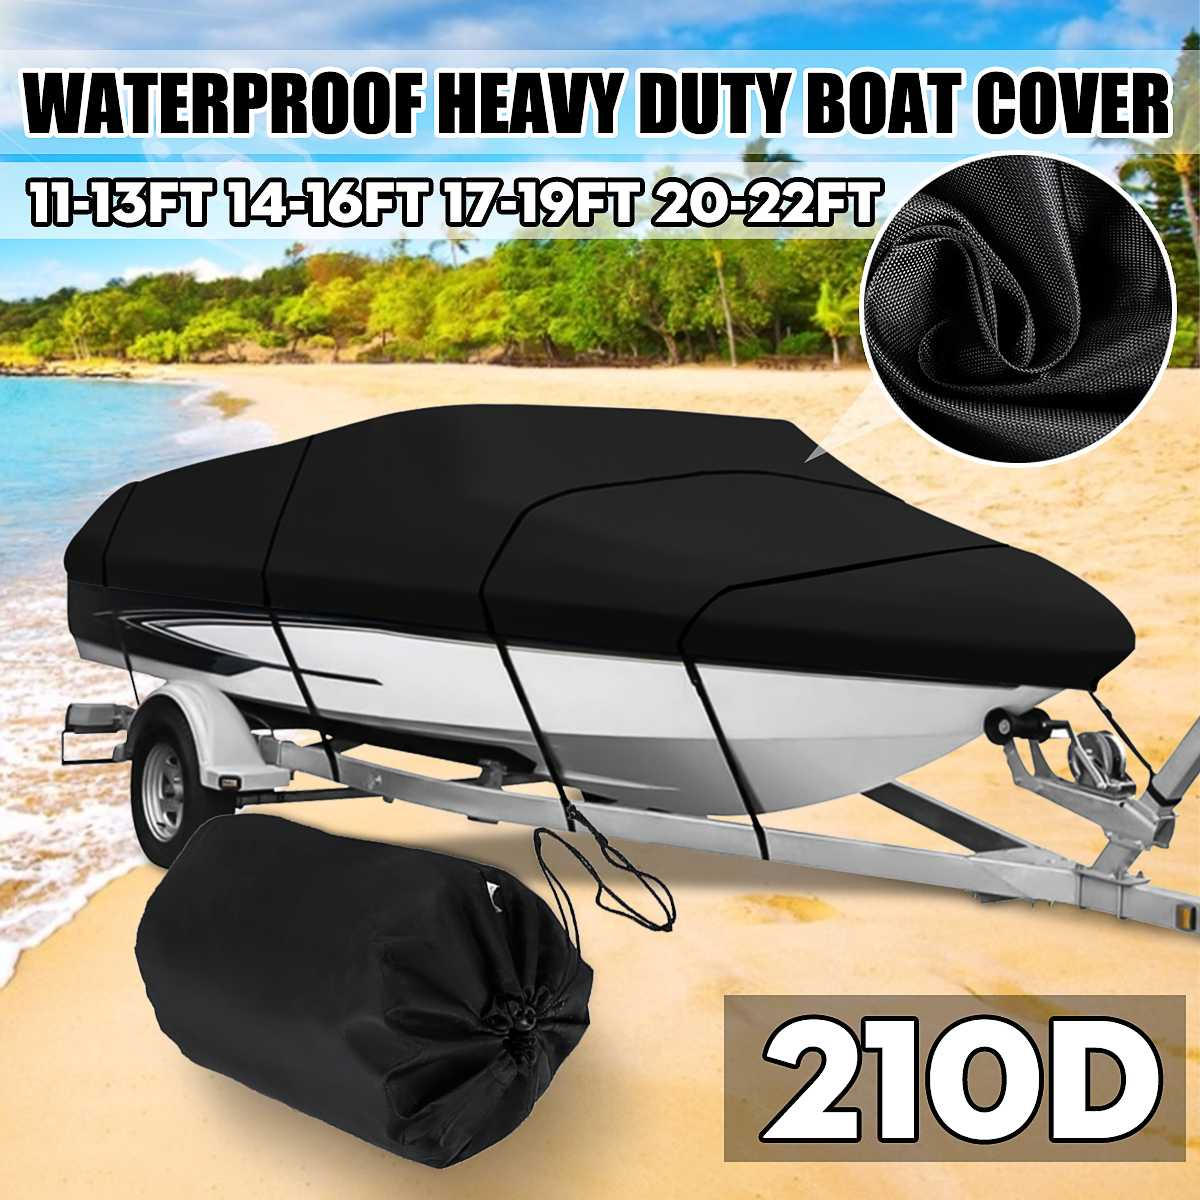 11-13ft 14-16ft 17-19ft 20-22ft Black Marine Grade Boat Cover Sunproof Anti UV Premium Heavy Duty 210D Trailerable Canvas